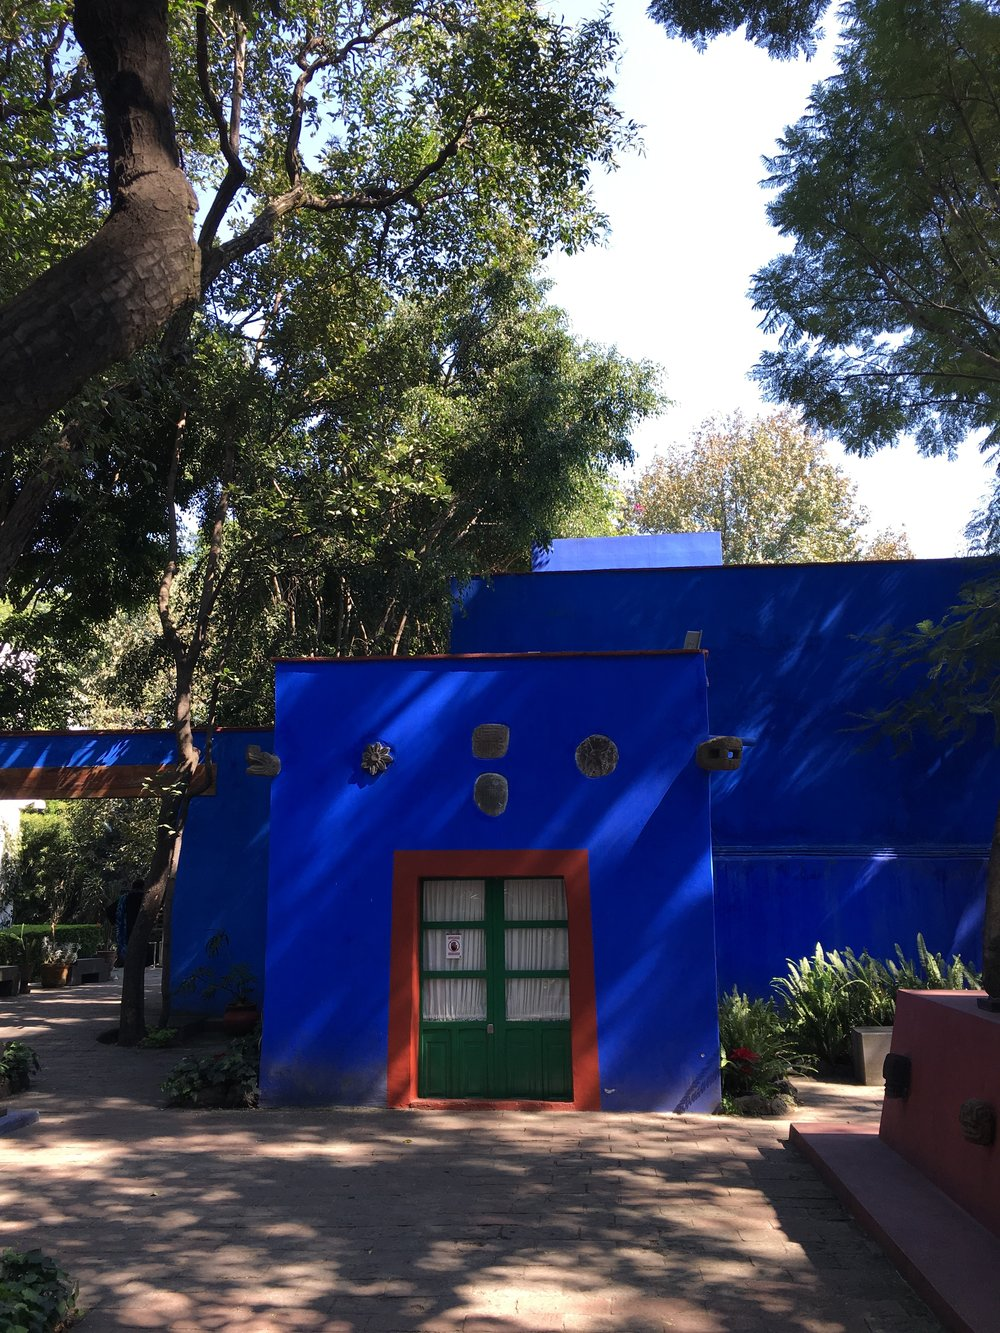 The Casa Azul de Frida Kahlo